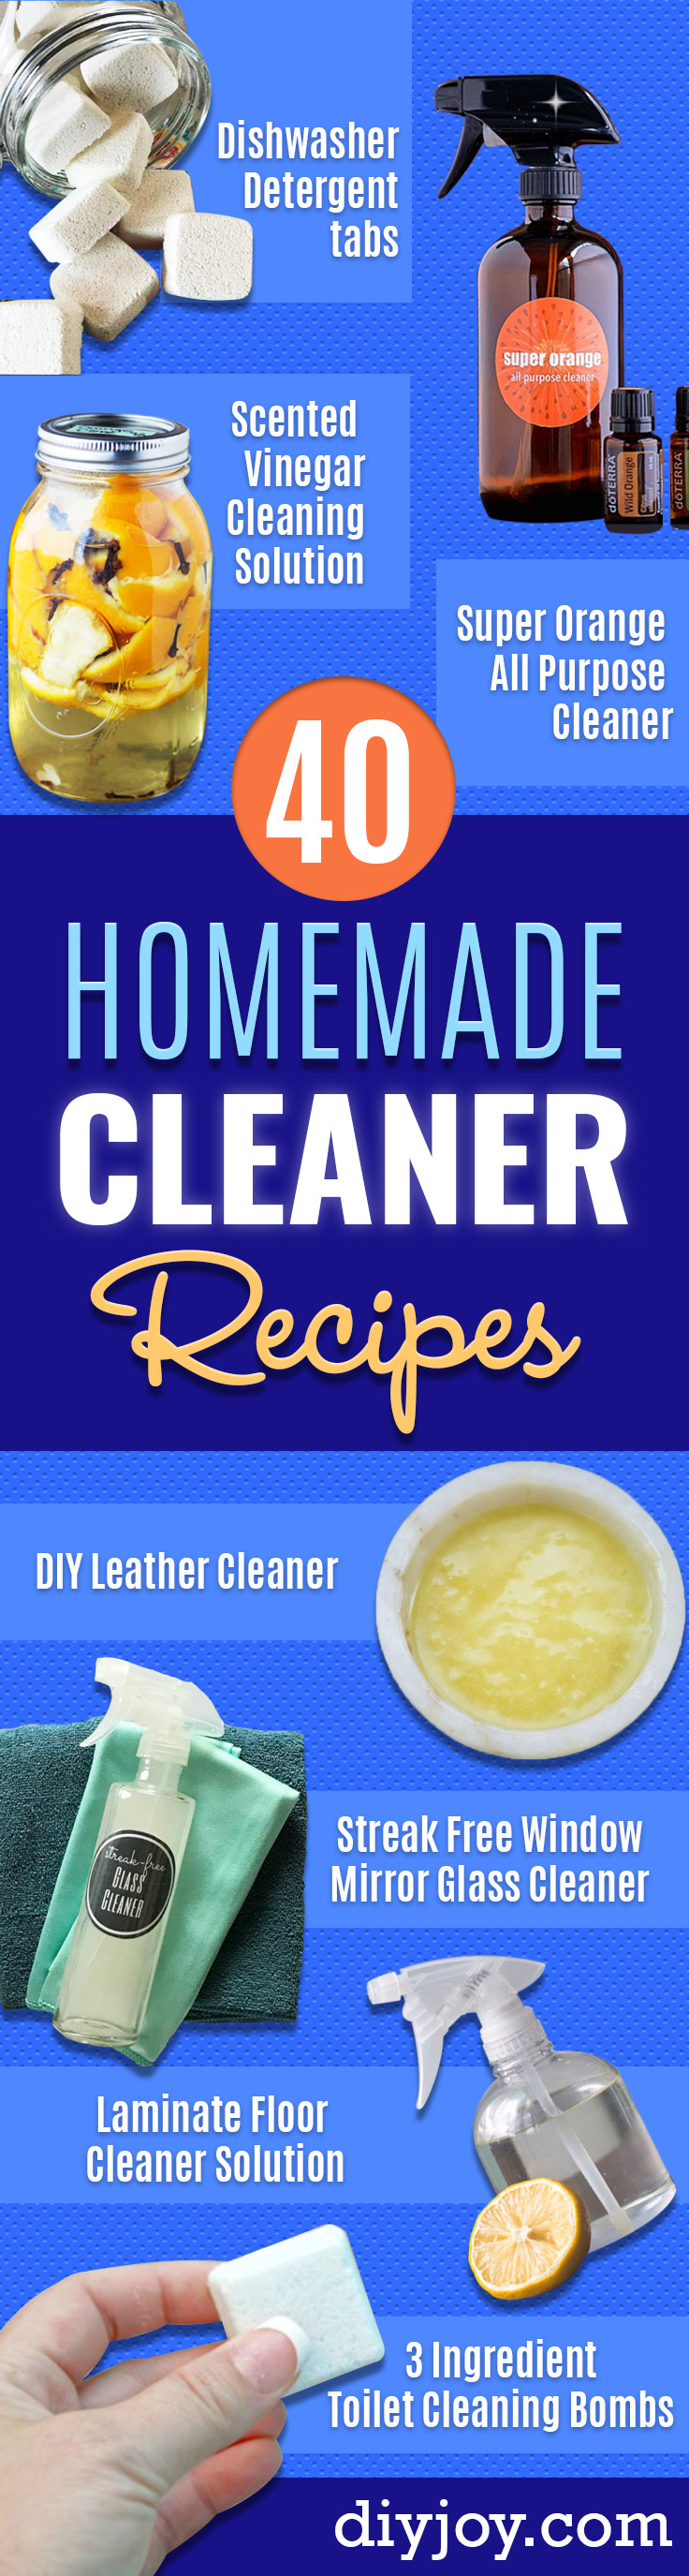 Homemade Cleaning Products - DIY Cleaners With Recipe and Tutorial - Make DIY Natural and ll Purpose Cleaner Recipes for Home With Vinegar, Essential Oils